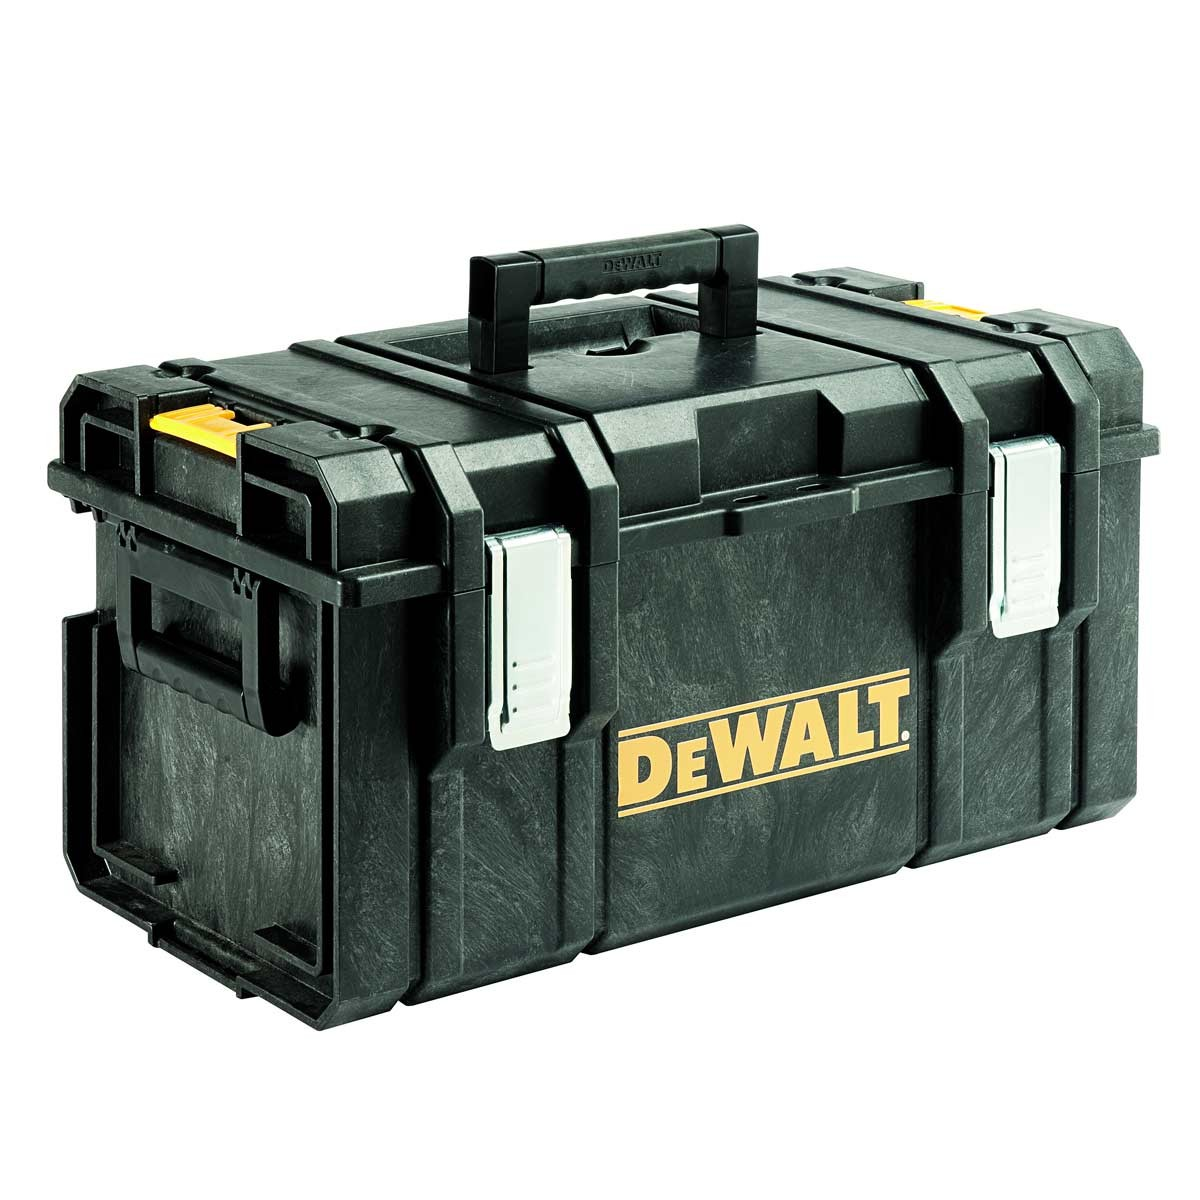 DeWalt 1-70-322 DS300 TOUGHSYSTEM Tool Box (No Tote Tray)